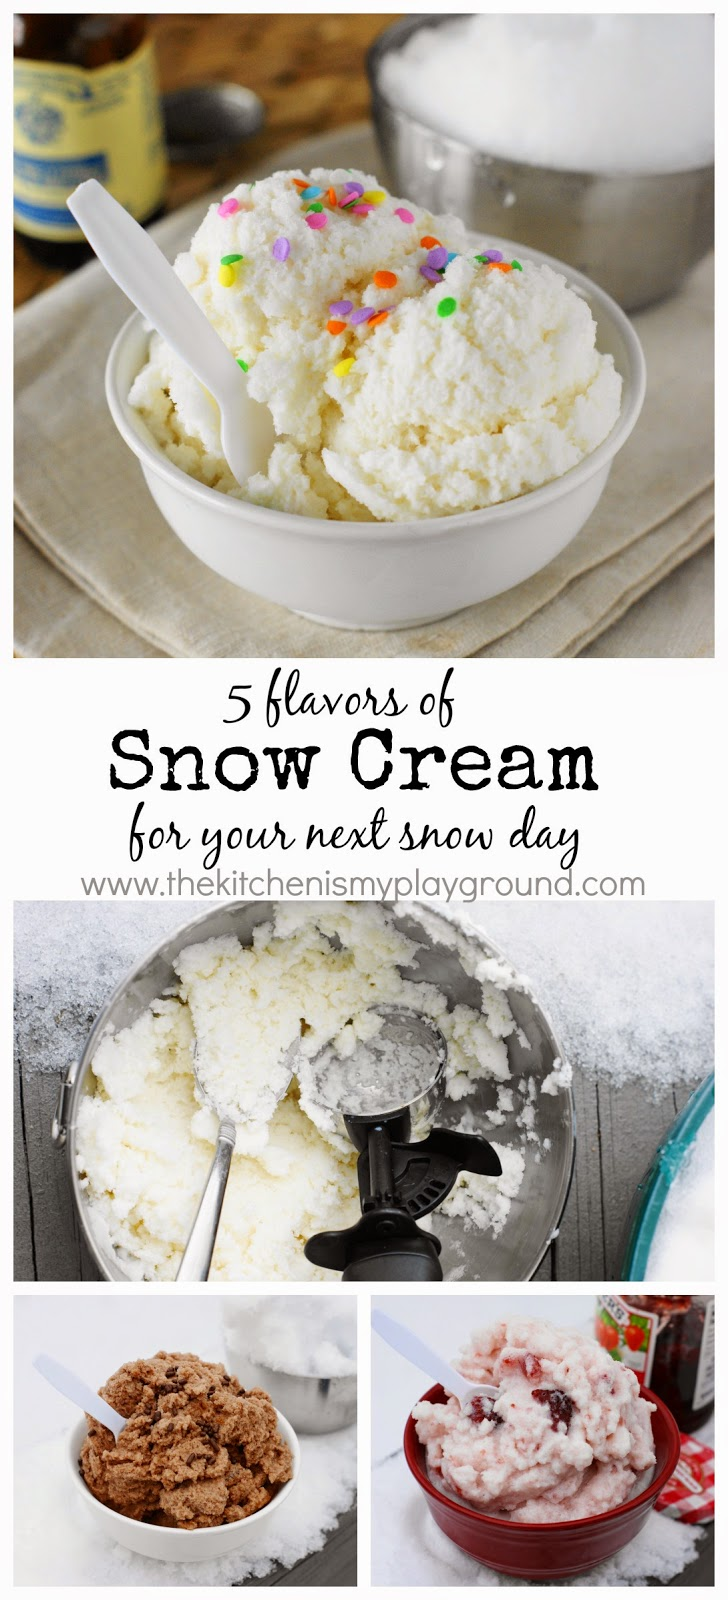 How to Make 5 Flavors of Snow Cream for Your Next Snow Day image